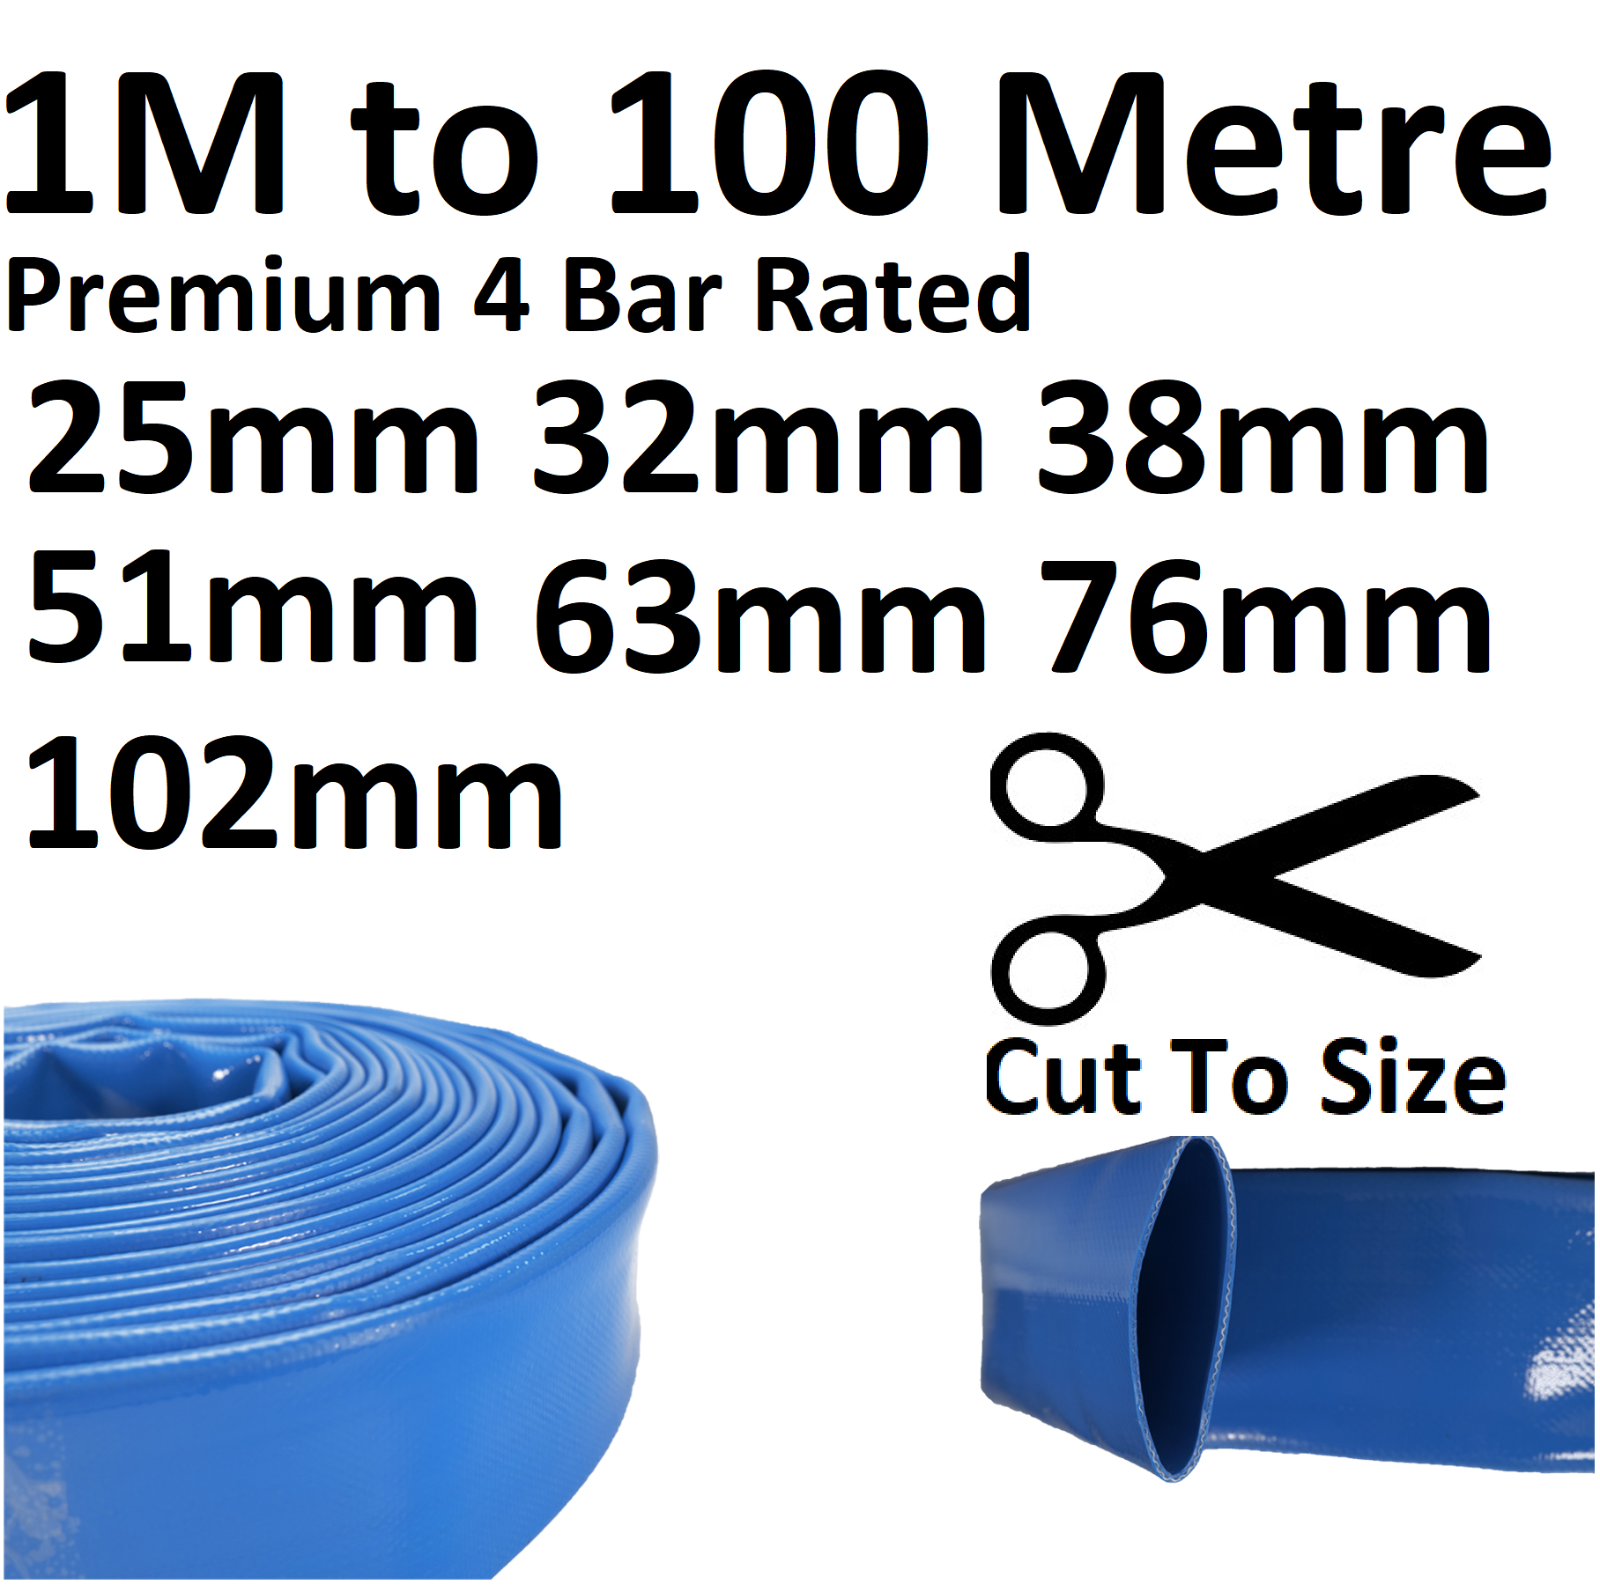 Layflat PVC Water Delivery Hose - Discharge Pipe Pump Lay Flat Irrigation